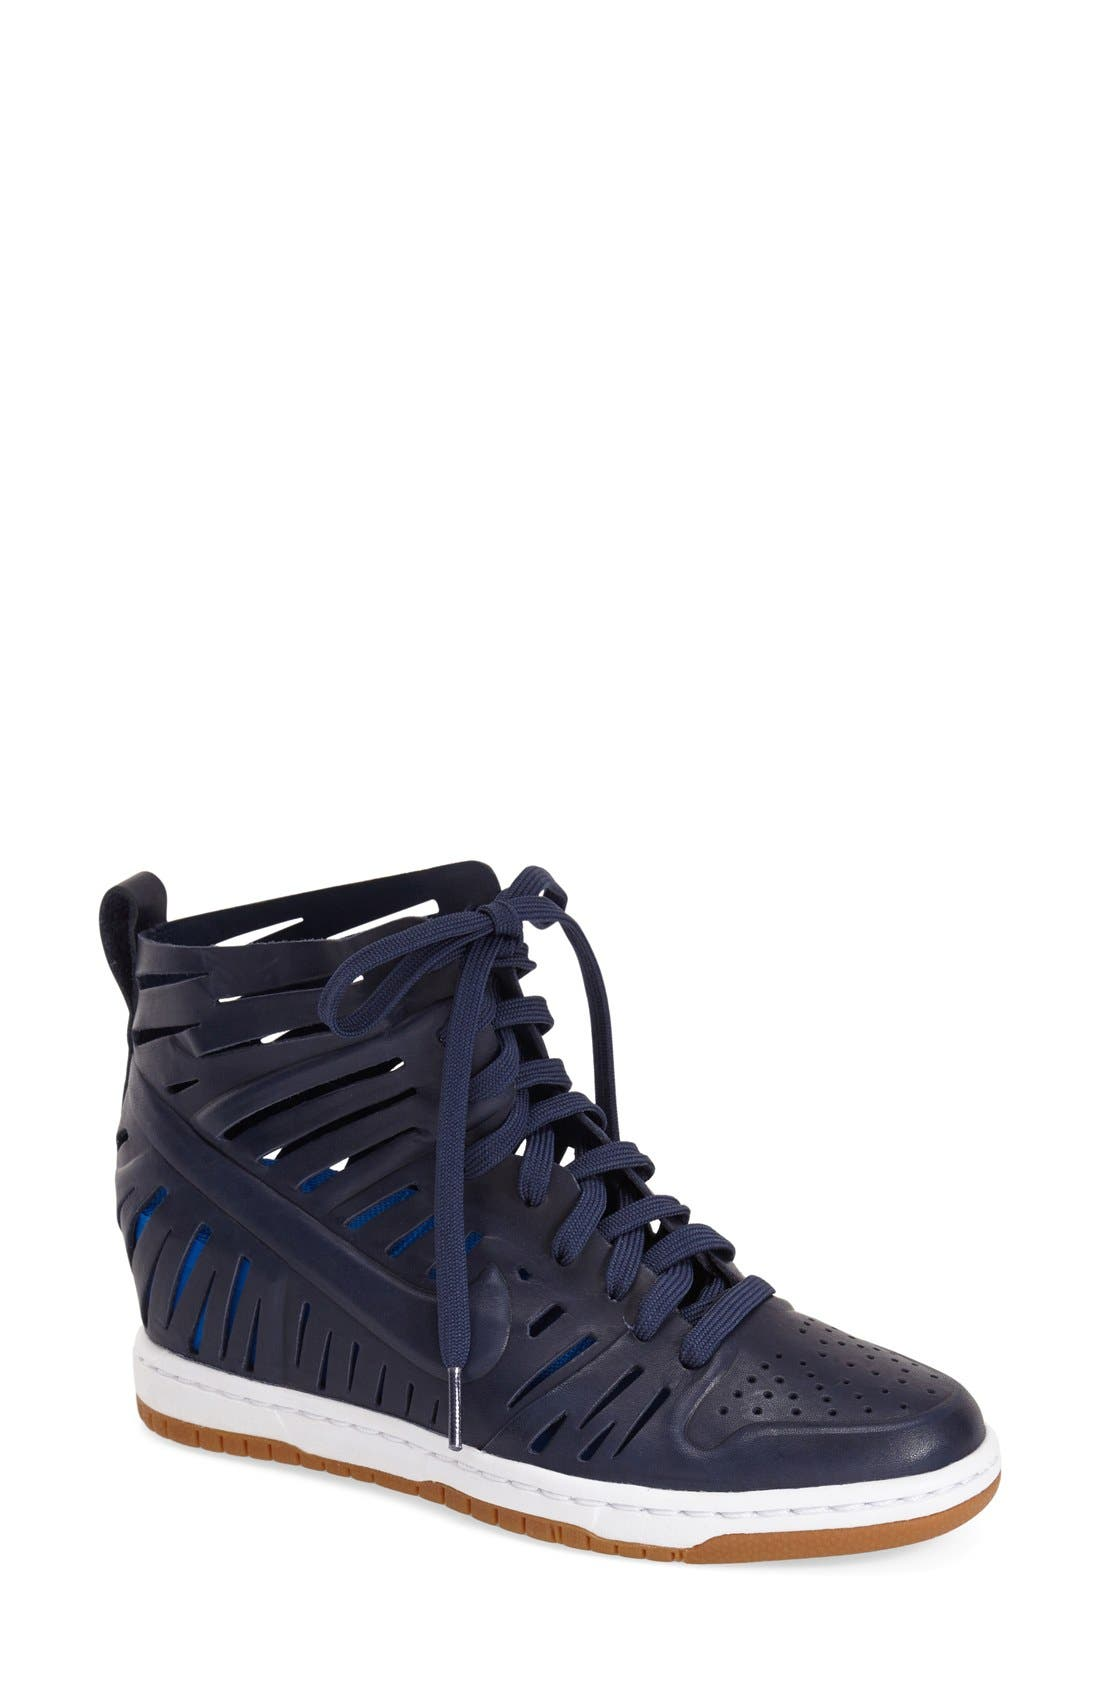 Main Image - Nike 'Dunk Sky Hi Joli' Hidden Wedge Sneaker (Women)